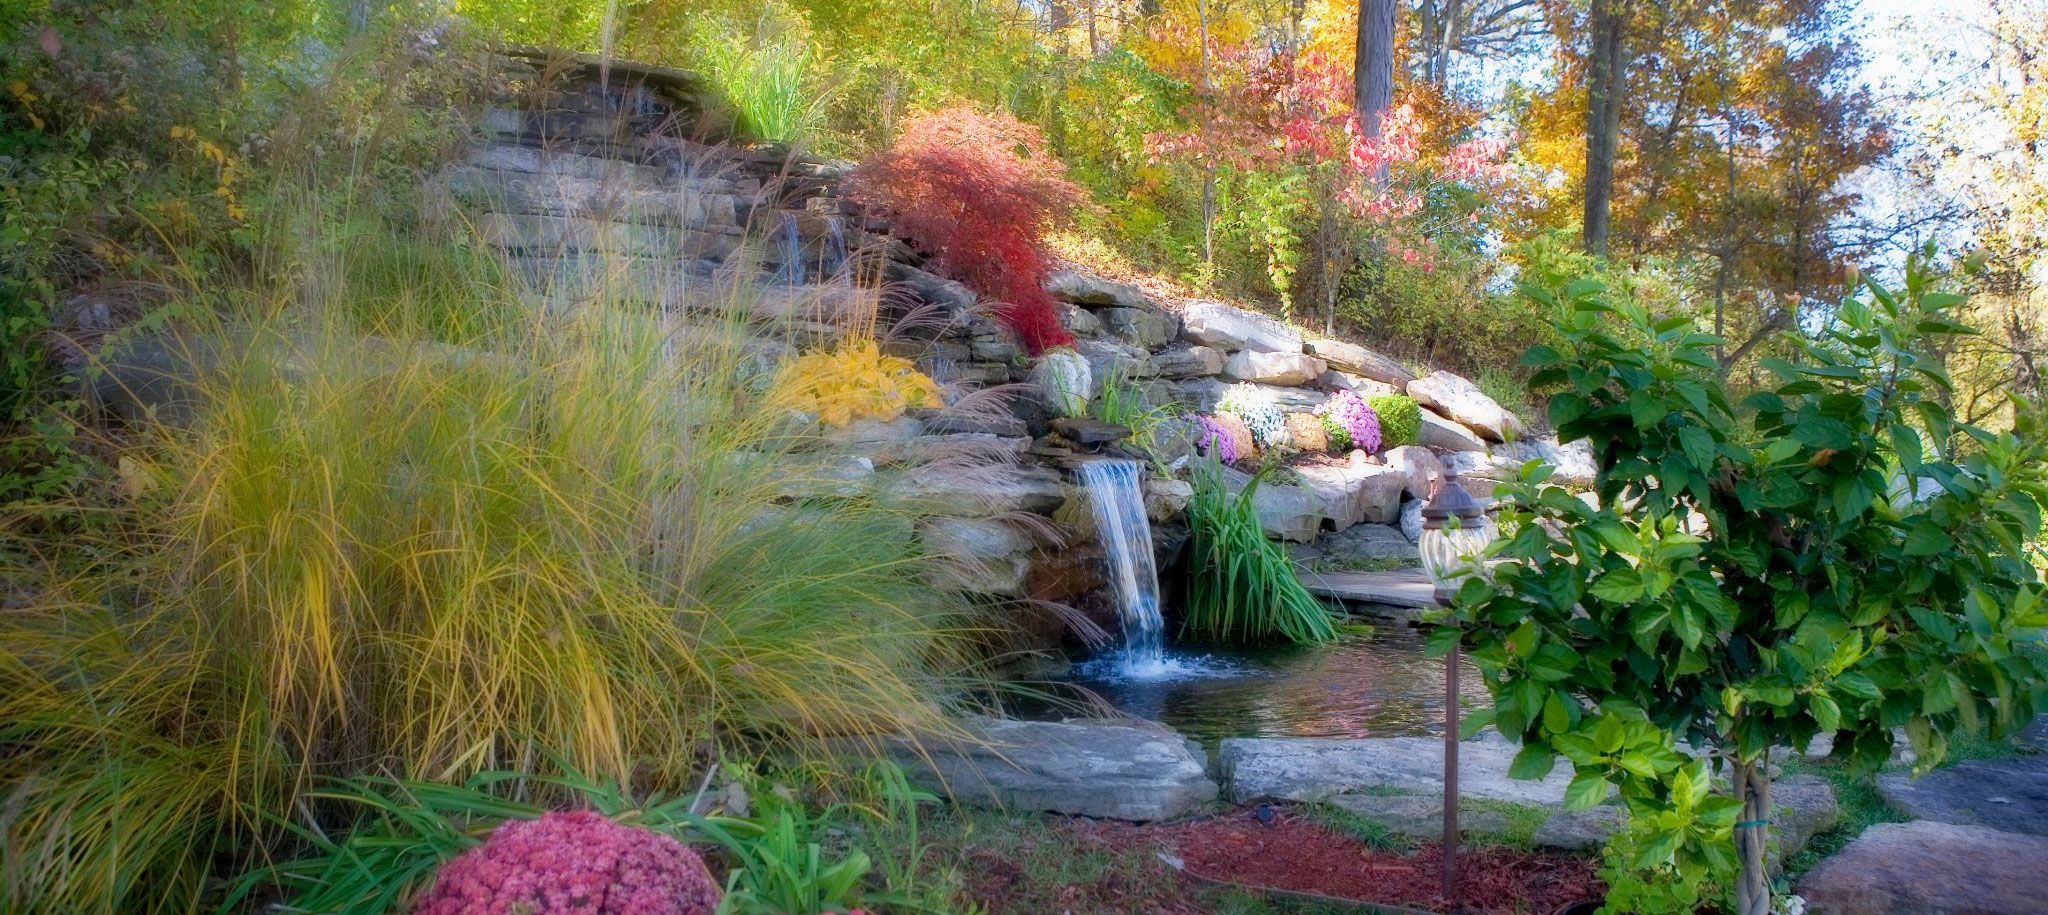 the falls reception and conference center columbia il autumn reception reception wedding pinterest